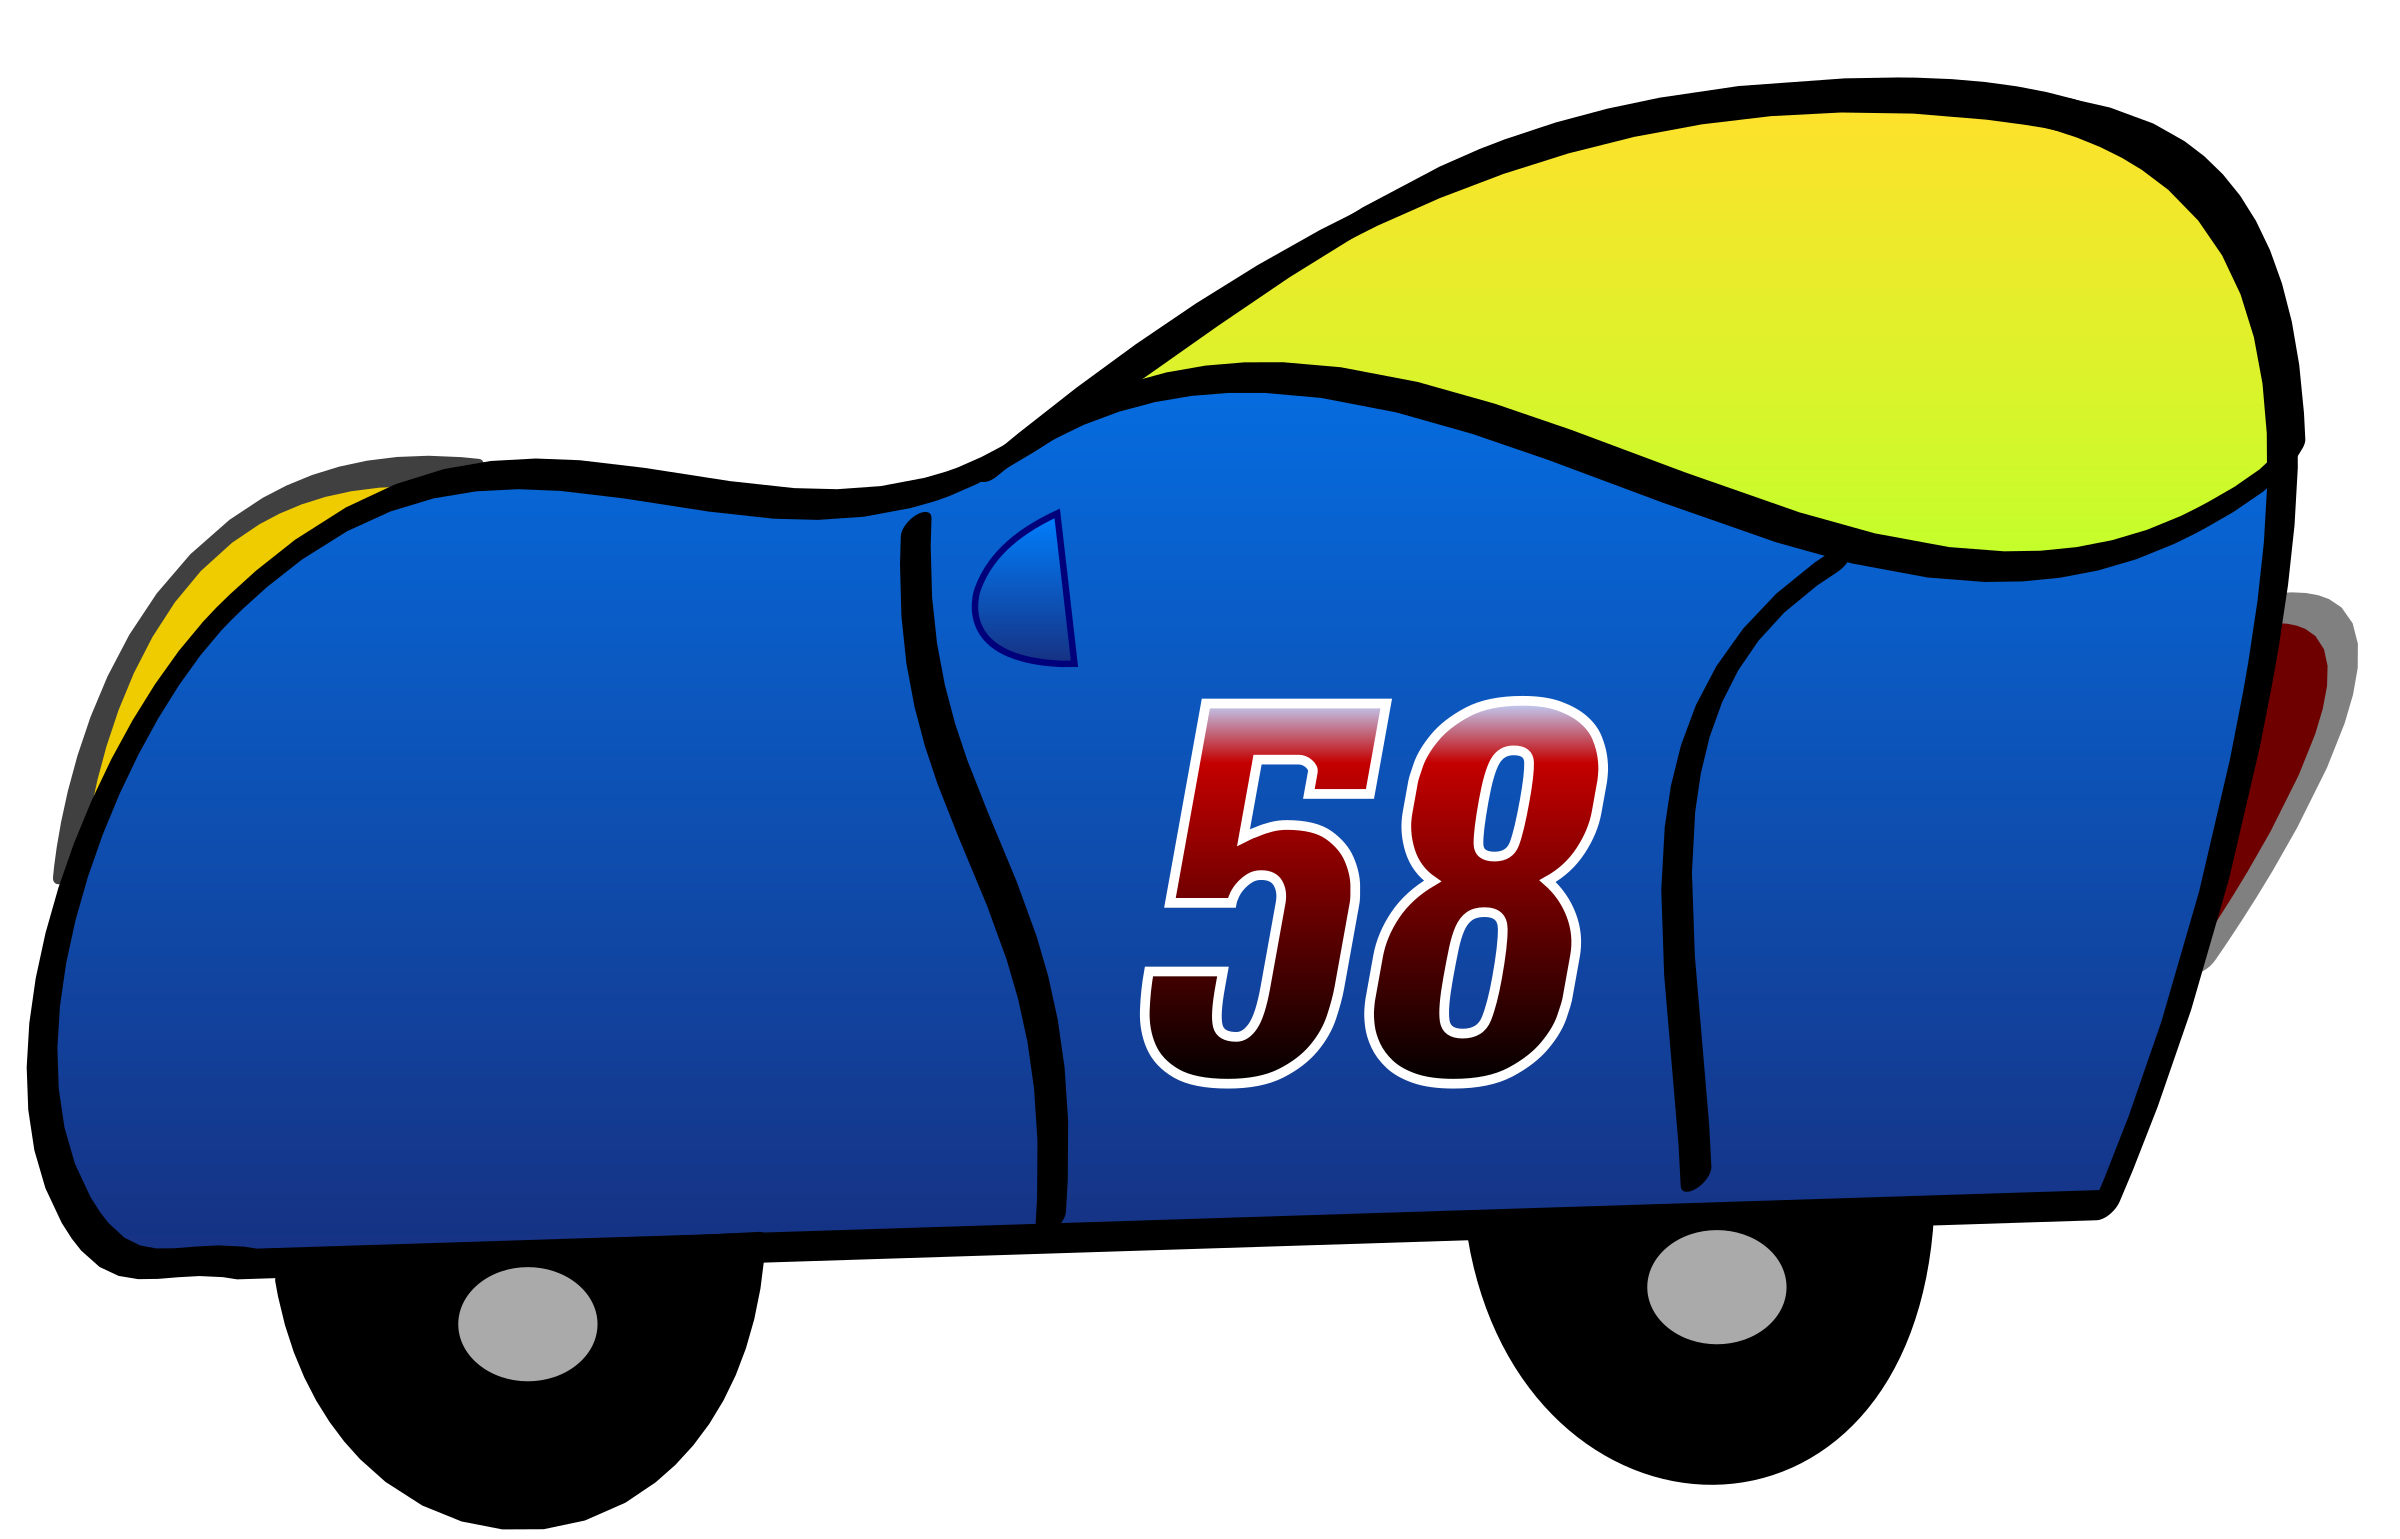 Funny Car Clipart at GetDrawings.com | Free for personal use Funny ... transparent download